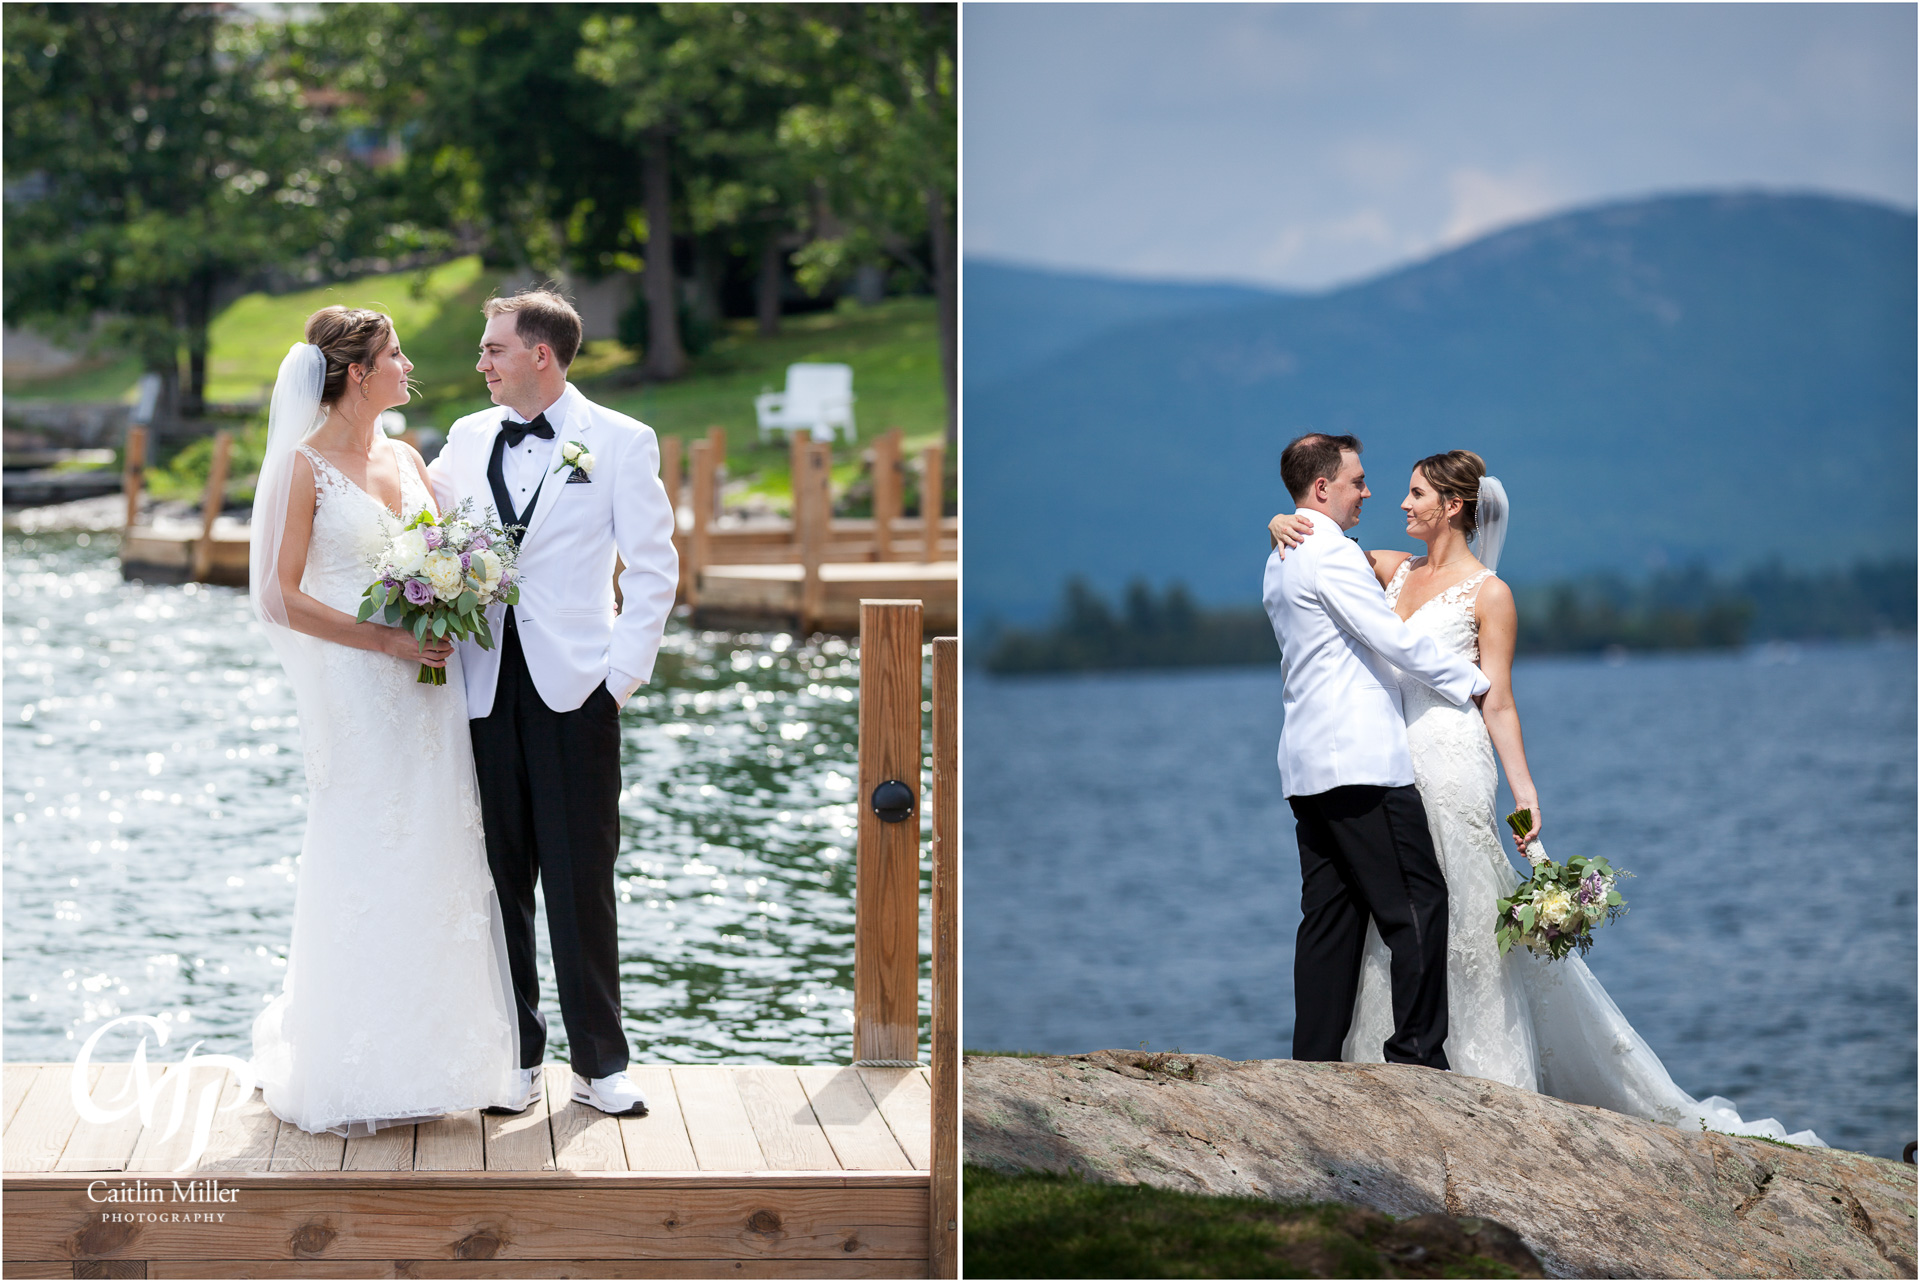 sale-6.jpg from Kendall and Chris's Lake George wedding at the Inn at Erlowest by Saratoga Wedding Photographer Caitlin Miller Photography. Lake George Wedding Photographer. Adirondack wedding photographer. Albany wedding photographer. Lake Placid Wedding Photographer. Saratoga Wedding Photographer